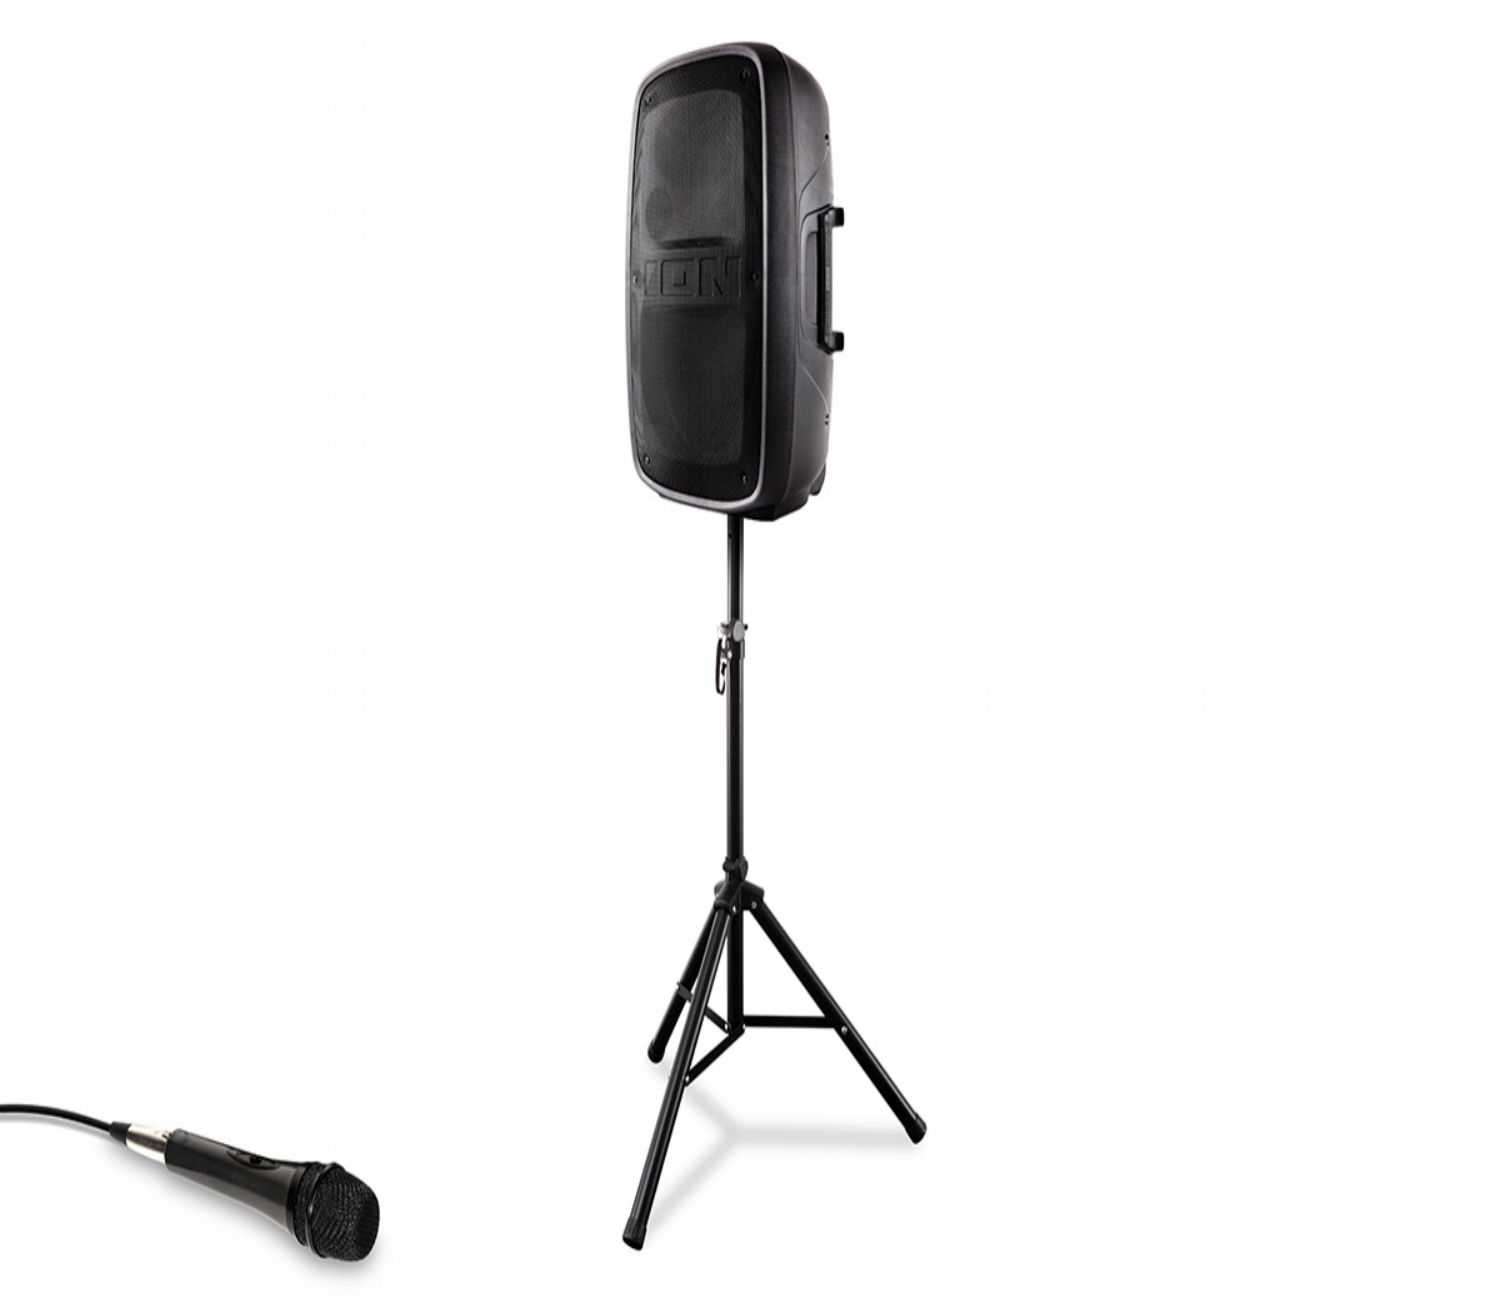 The Total PA Pro packs a punch with 400 watts of power. Along with being bluetooth compatible the Total PA Pro is ready to take your event to a new level. Includes microphone.